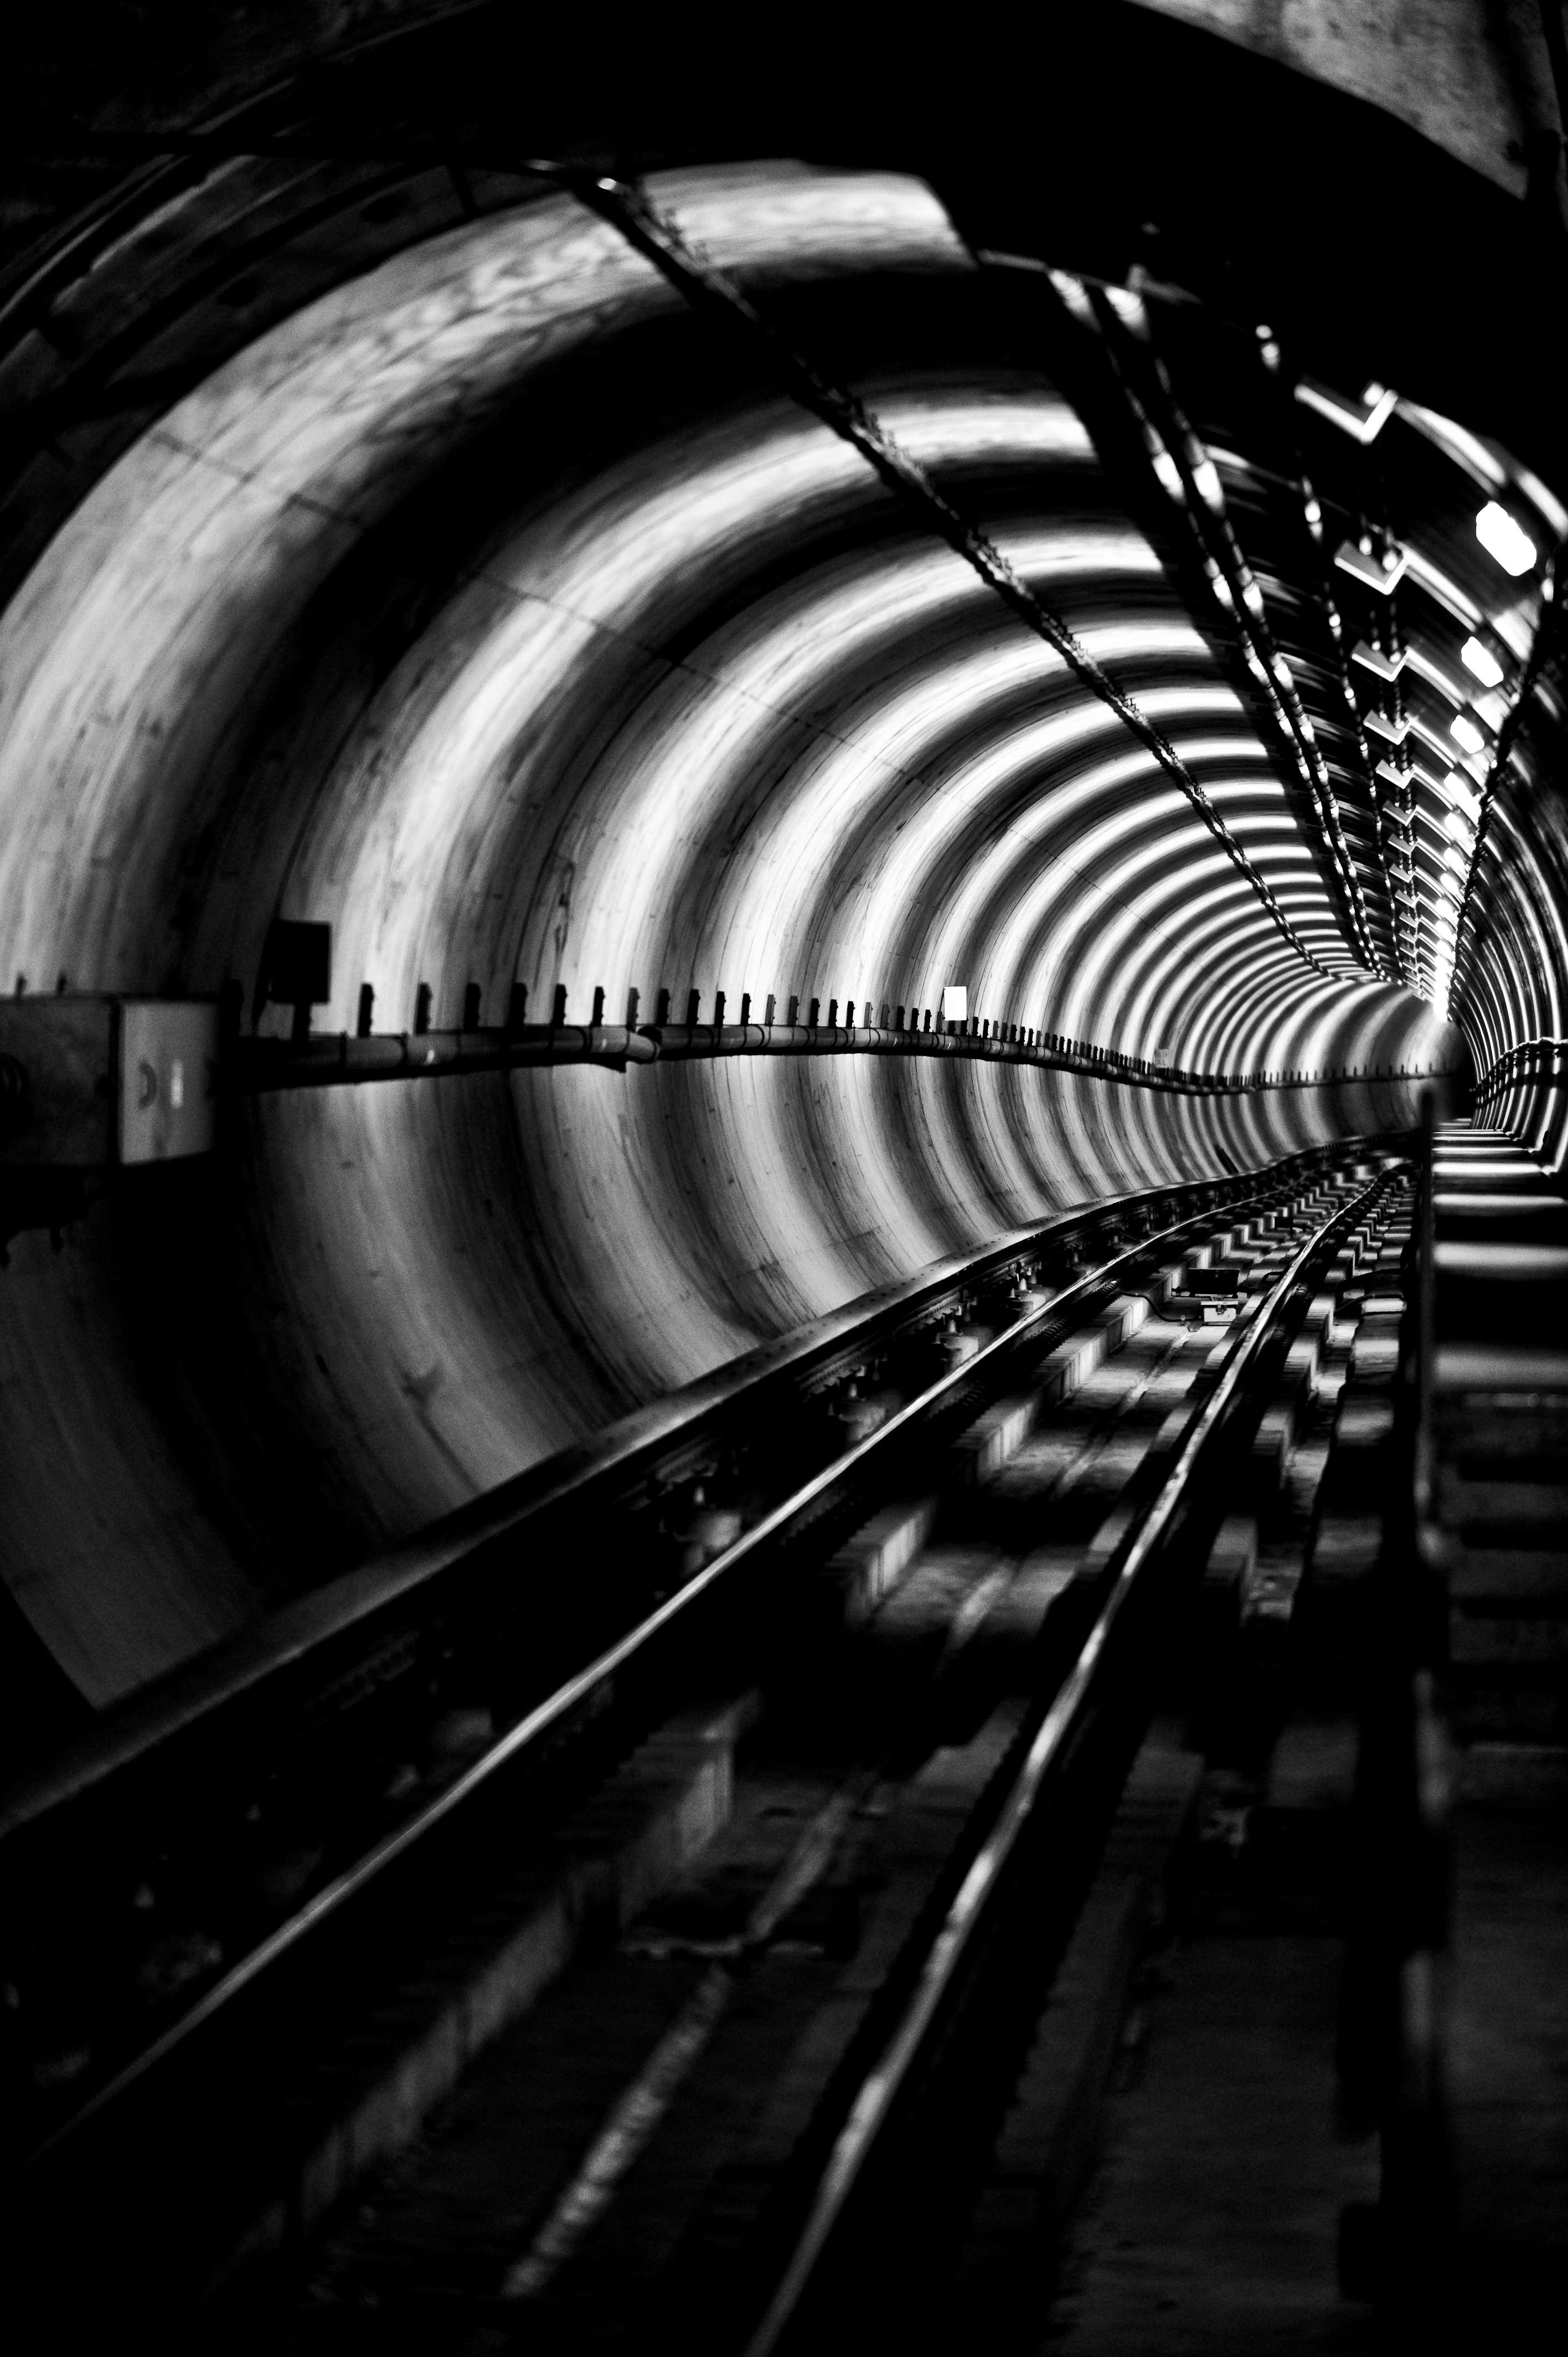 127714 Screensavers and Wallpapers Metro for phone. Download Miscellanea, Miscellaneous, Bw, Tunnel, Underground, Rails, Metro, Subway pictures for free